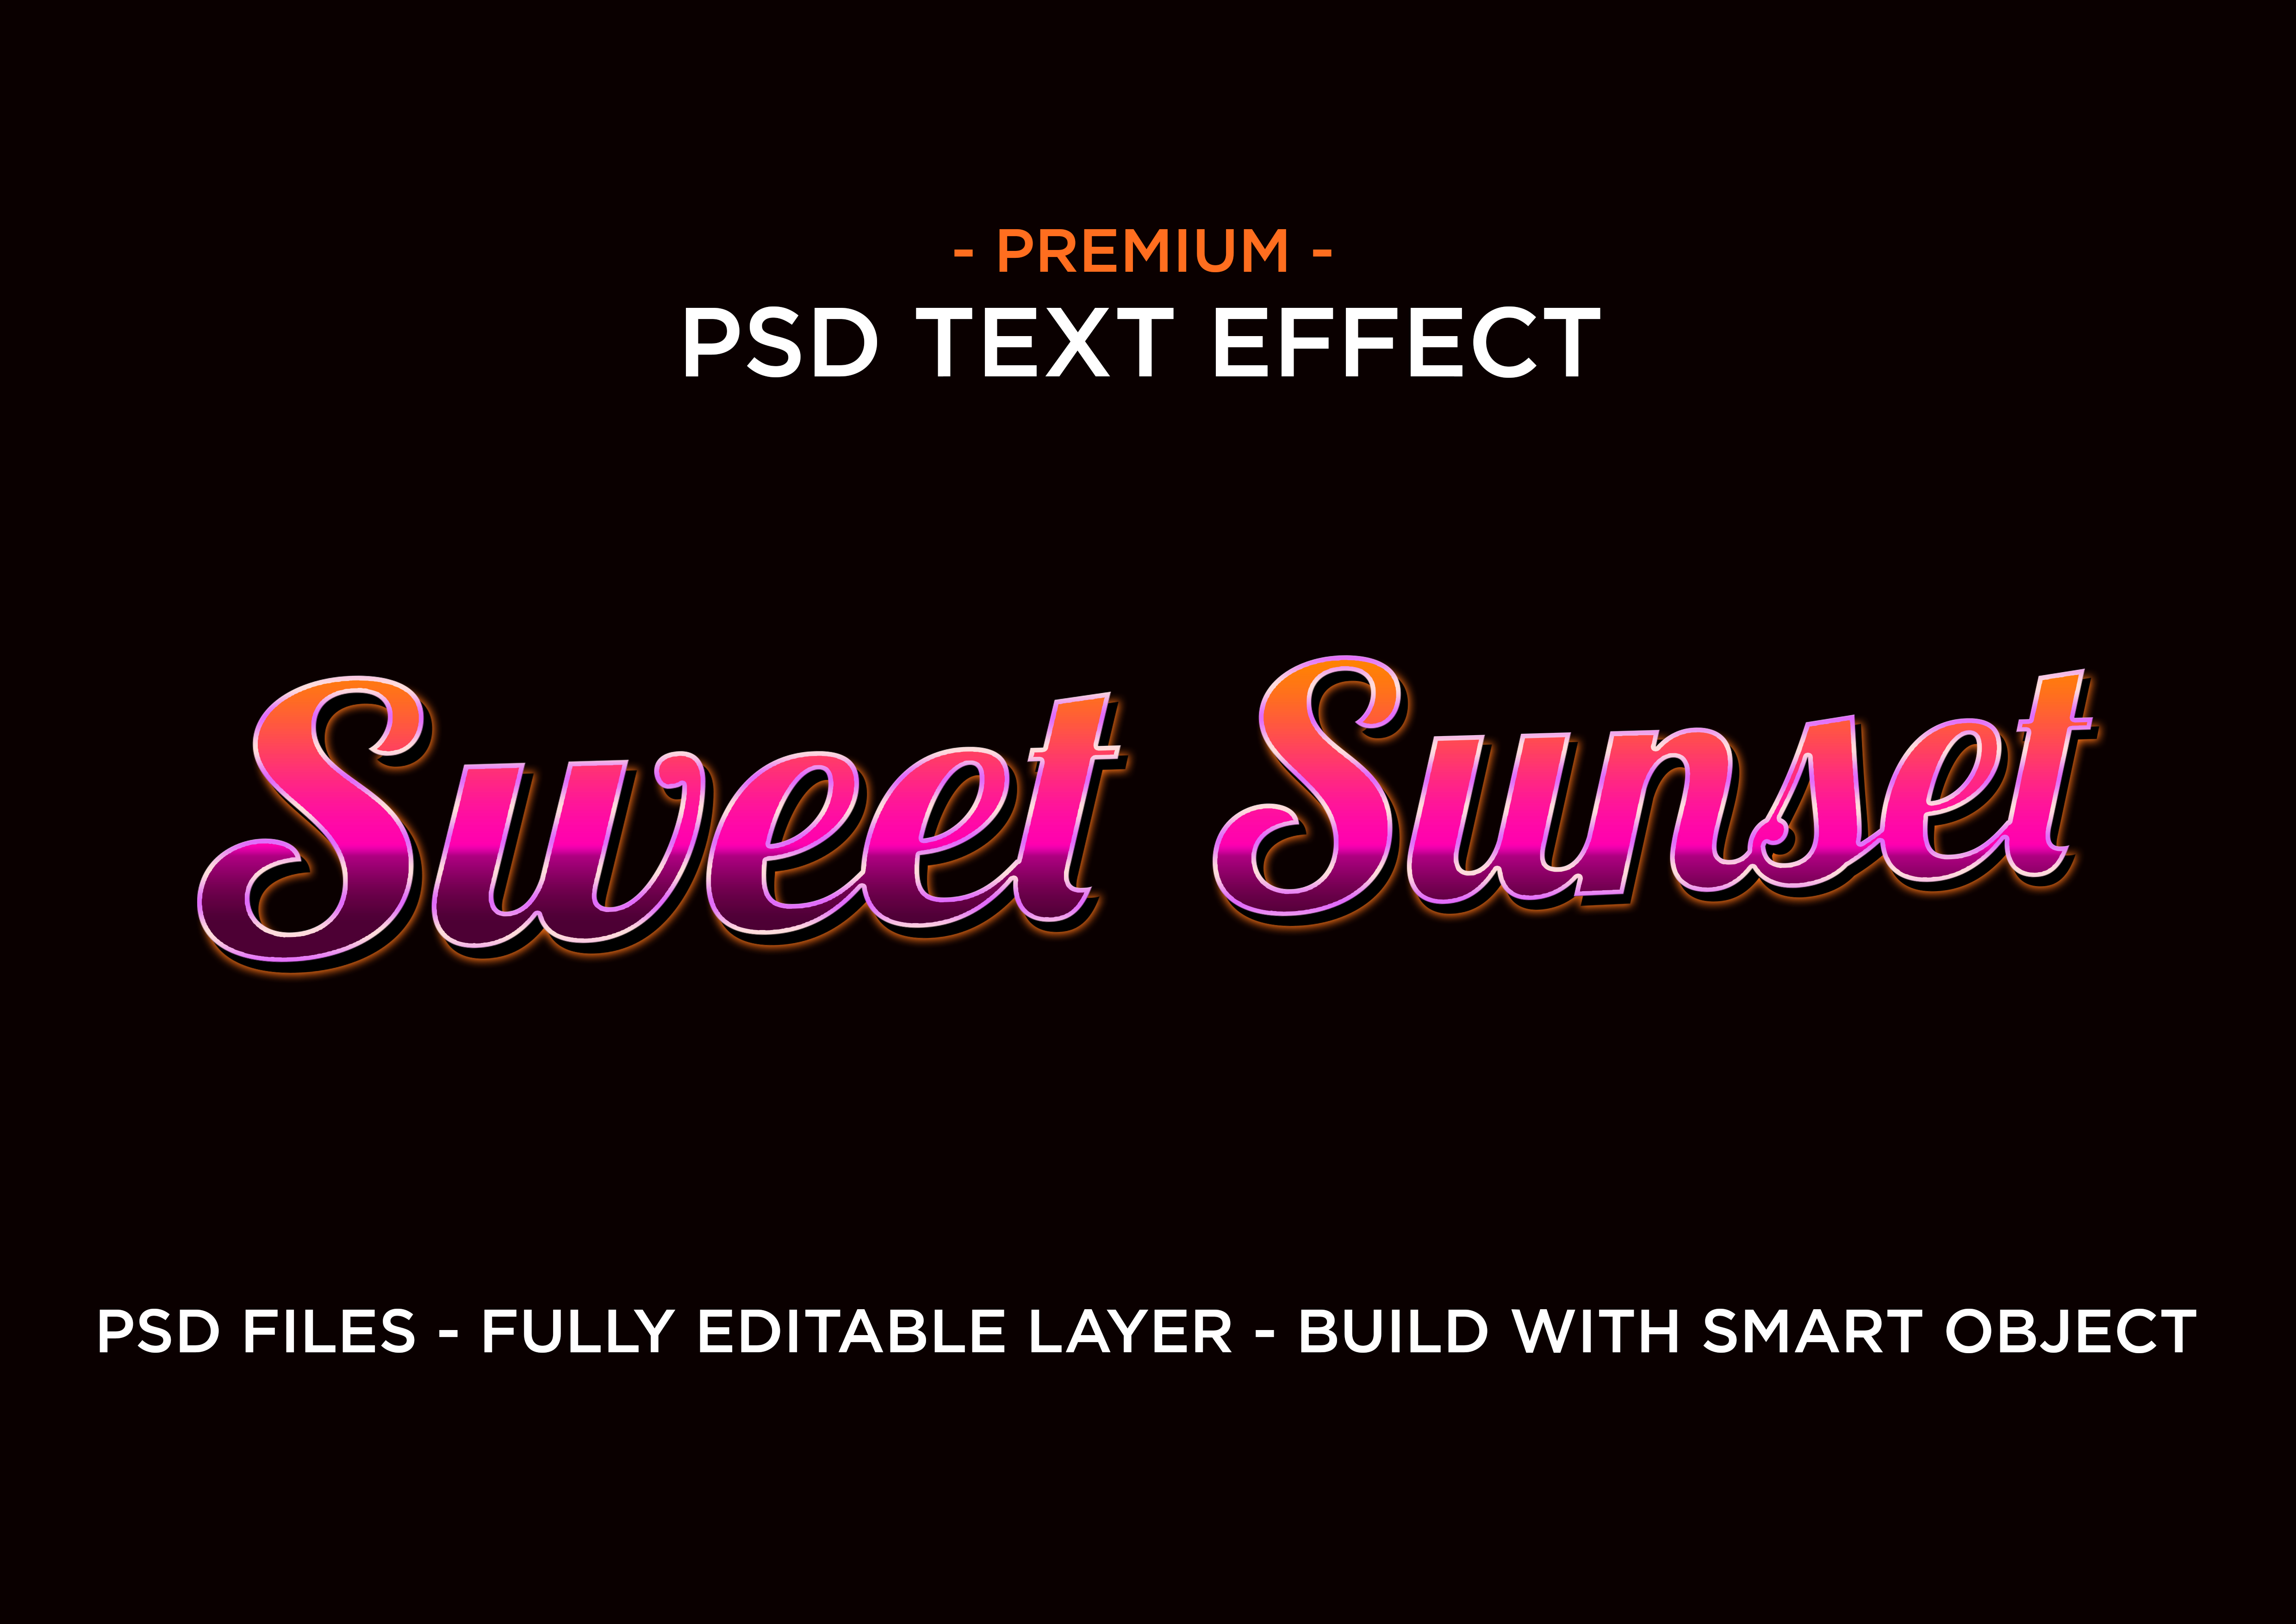 Download Free Sweet Sunset Psd Text Layer Style Effect Graphic By Eddyinside for Cricut Explore, Silhouette and other cutting machines.